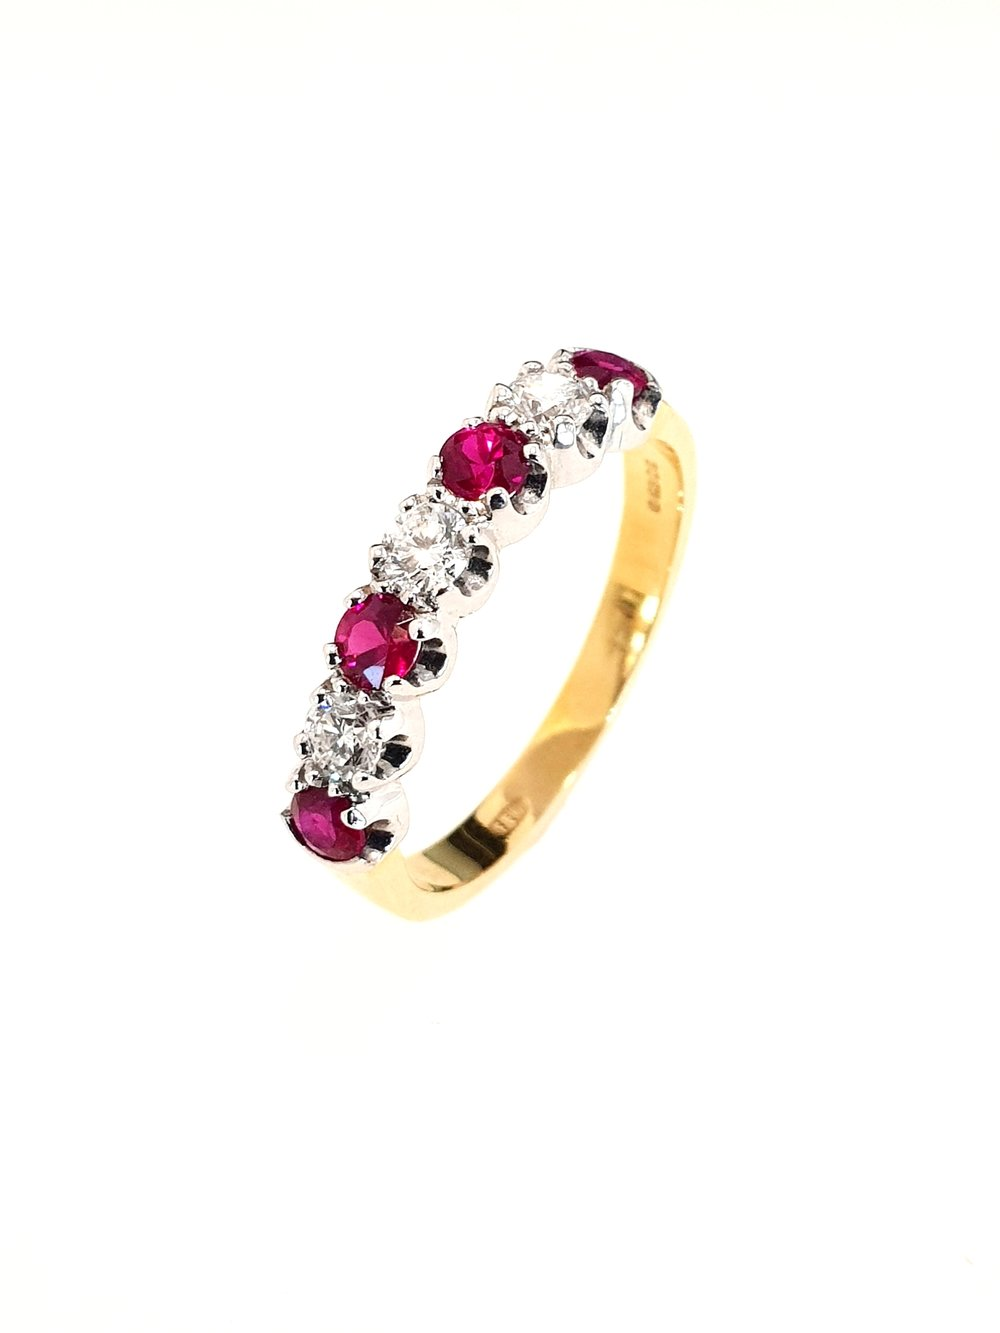 18ct Yellow Gold Ruby (.46ct) & Diamond Ring  Diamond: .26ct, G, Si1  Stock Code: N85136  £1375